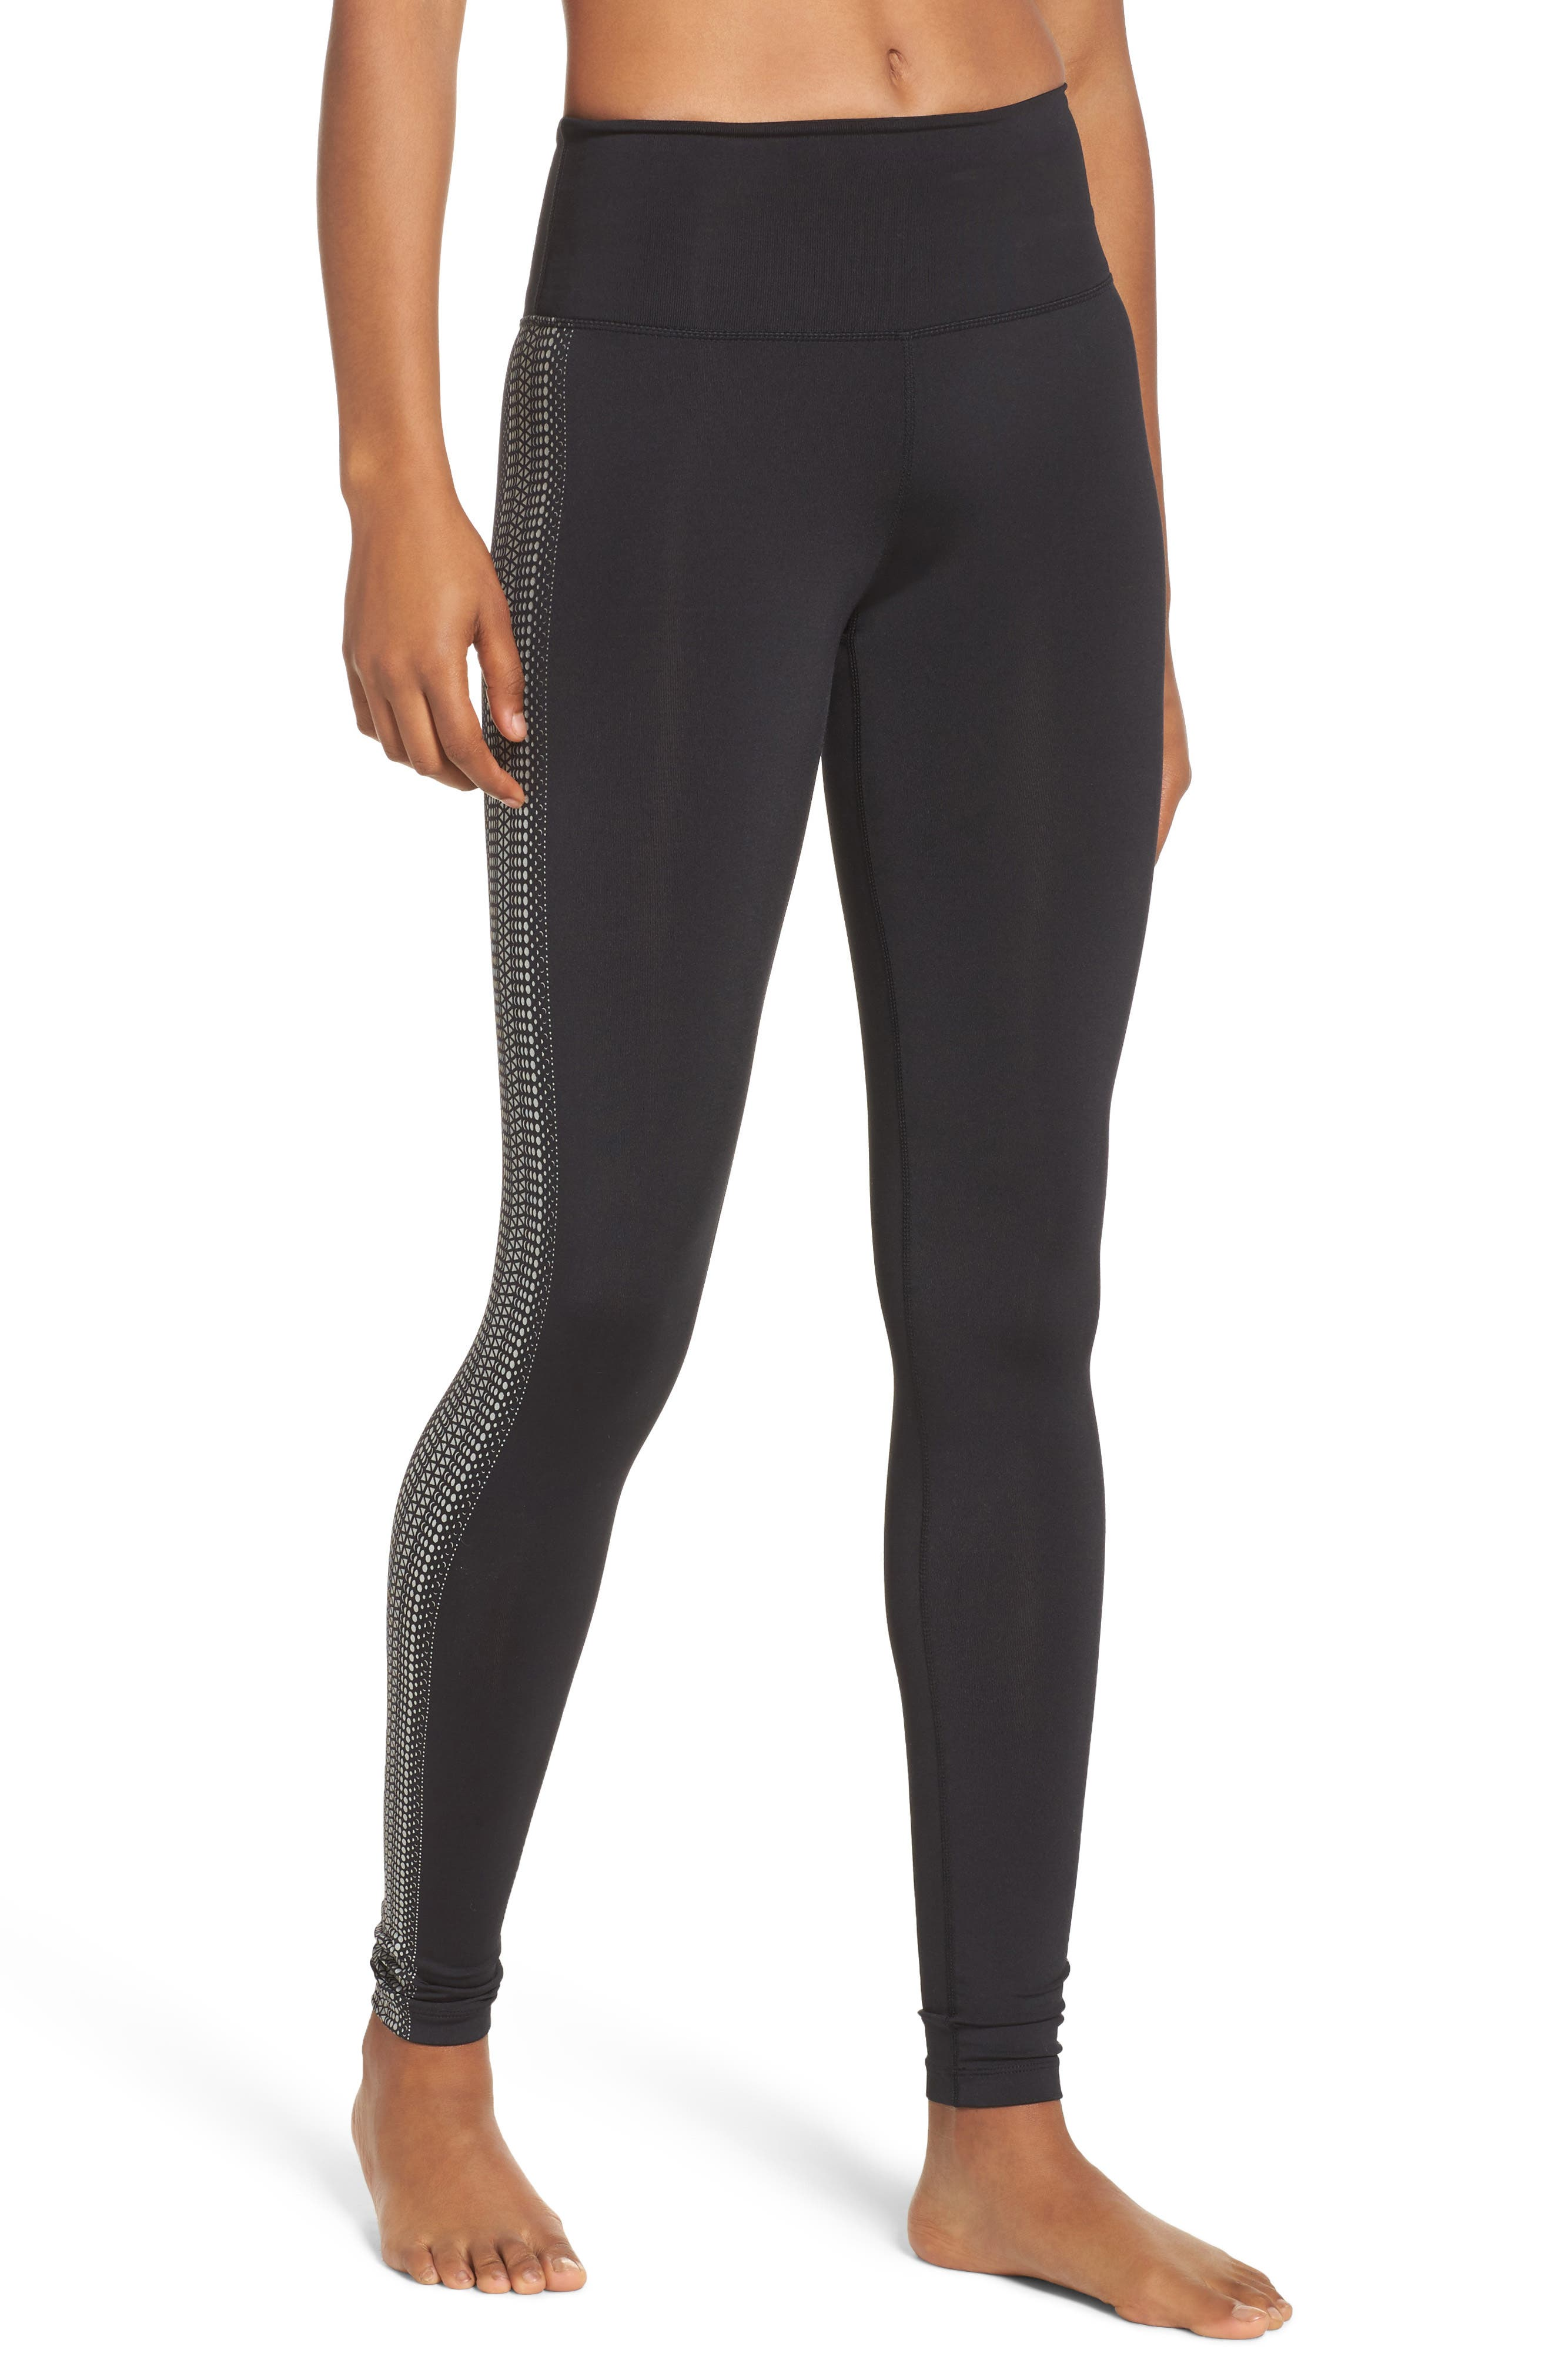 FP Movement Raku Reflective Leggings,                             Main thumbnail 1, color,                             Black